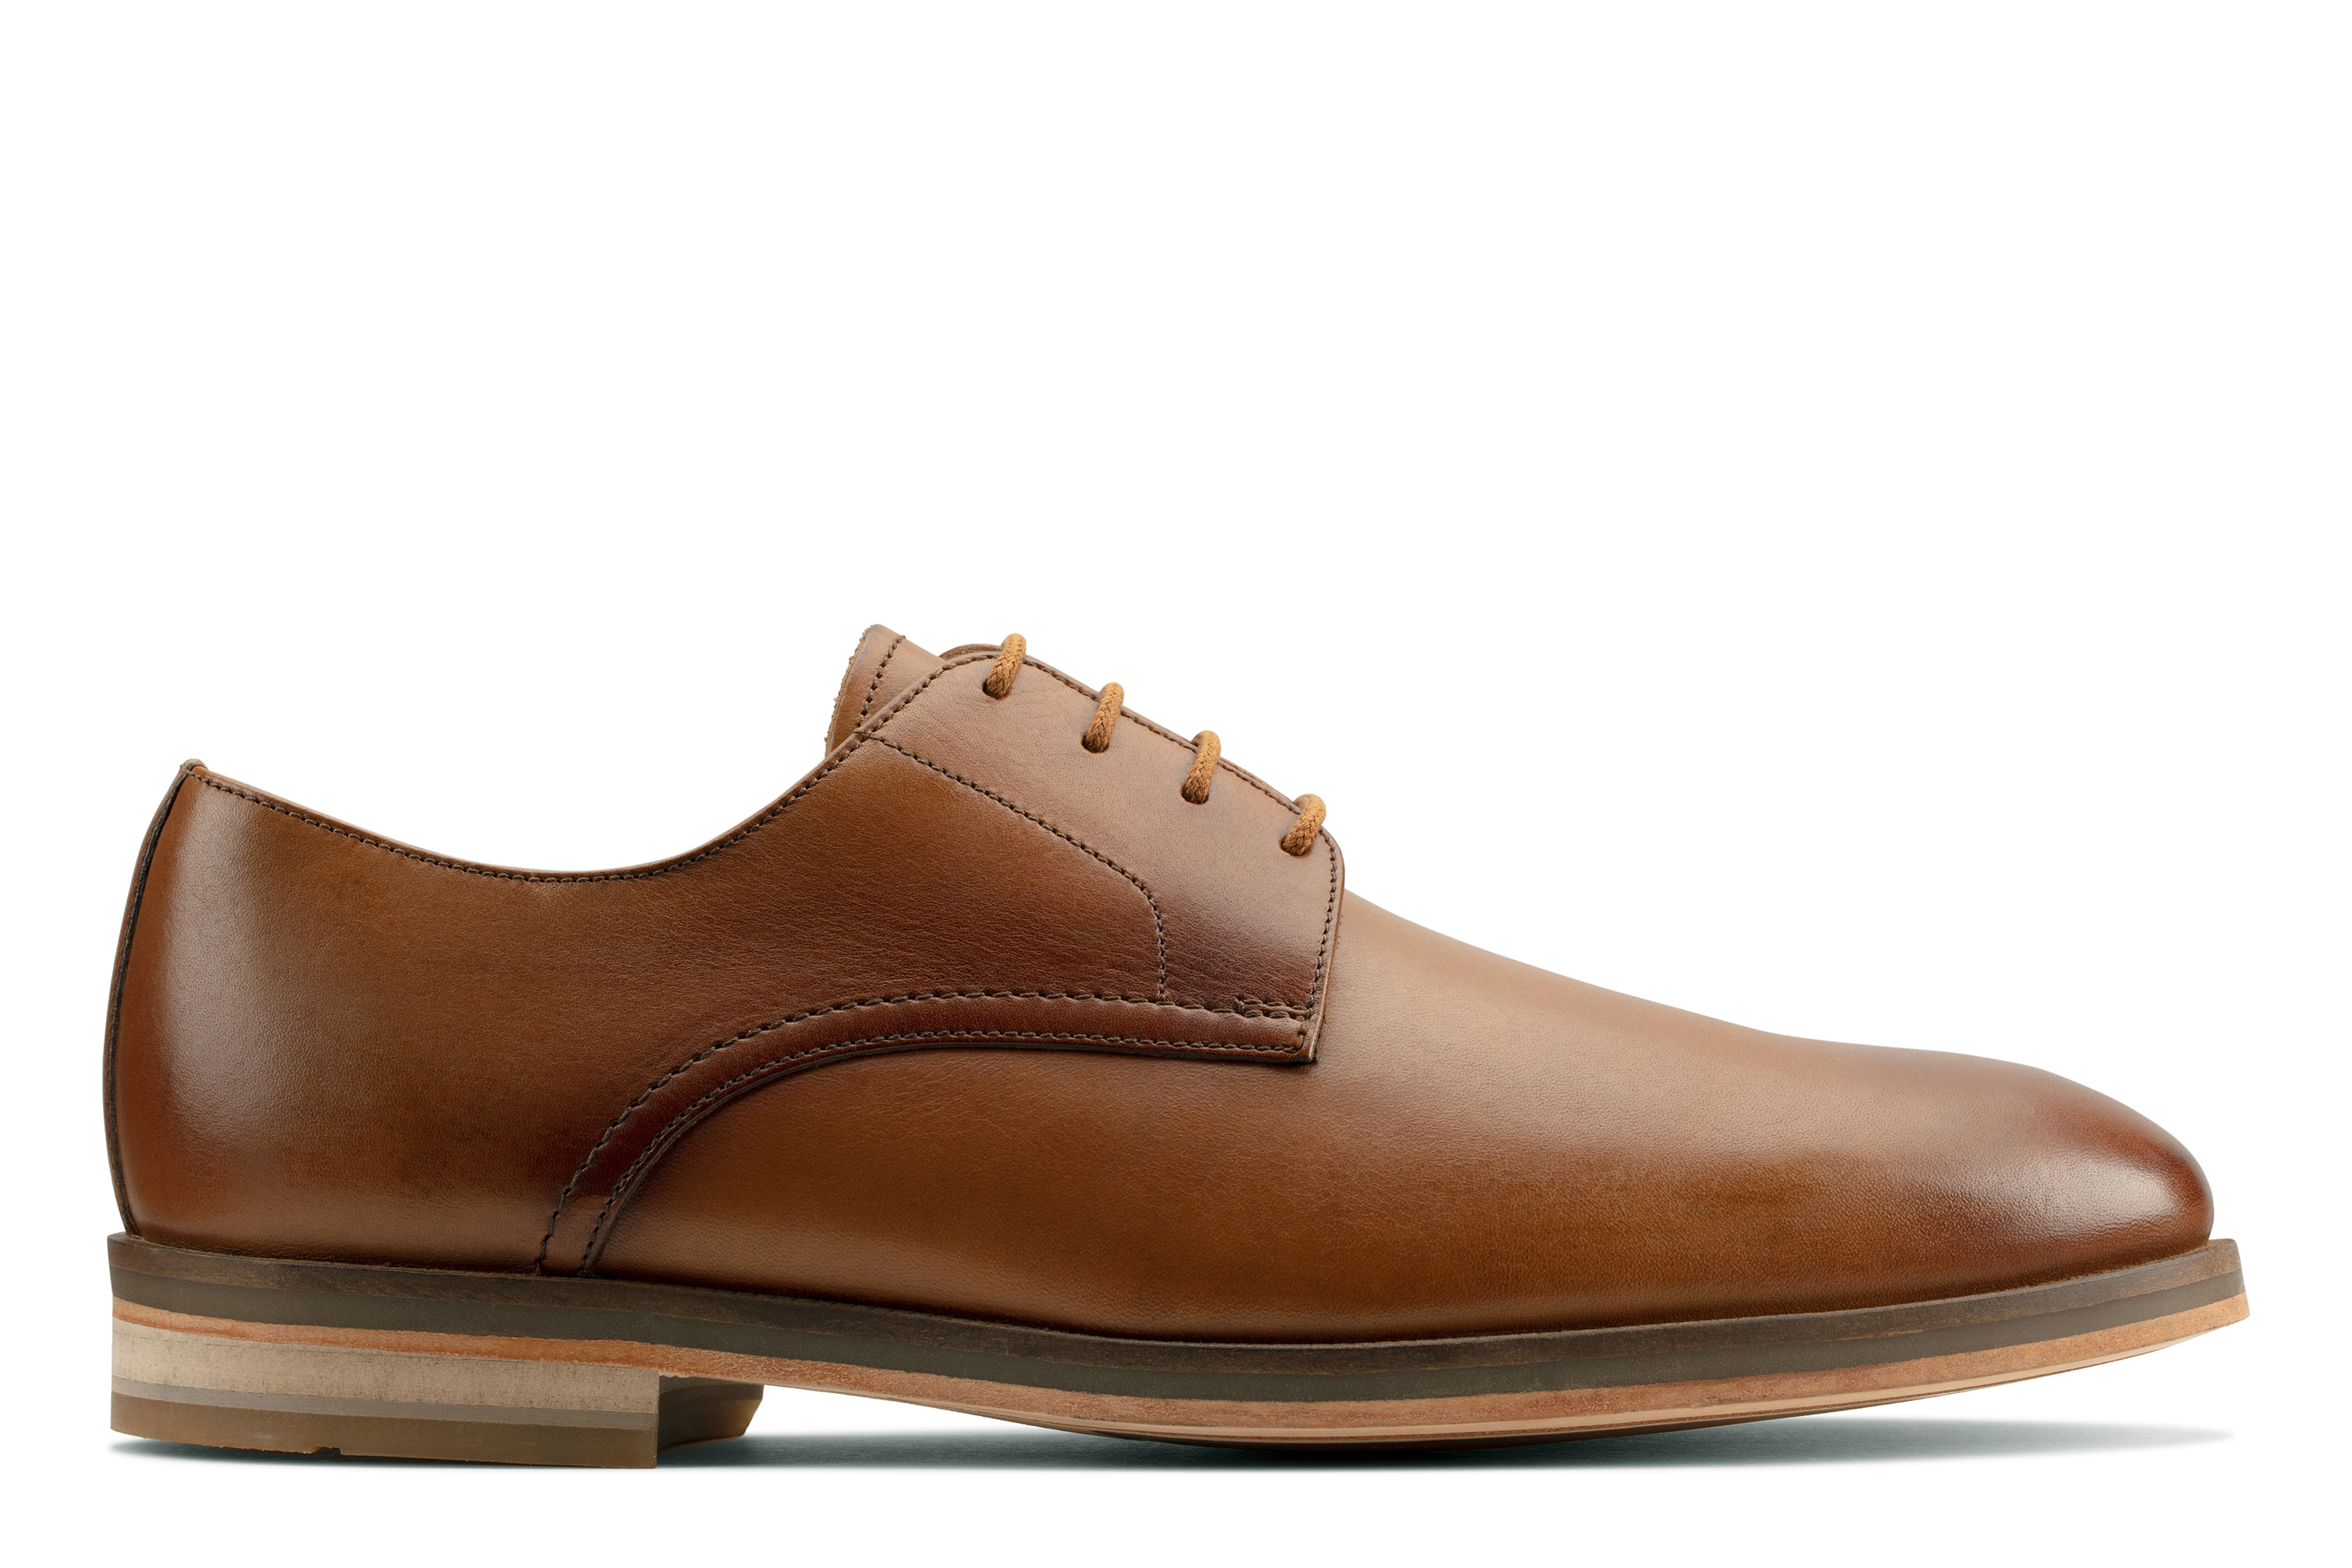 Clarks | Oliver Lace Tan Leather Derby Shoes